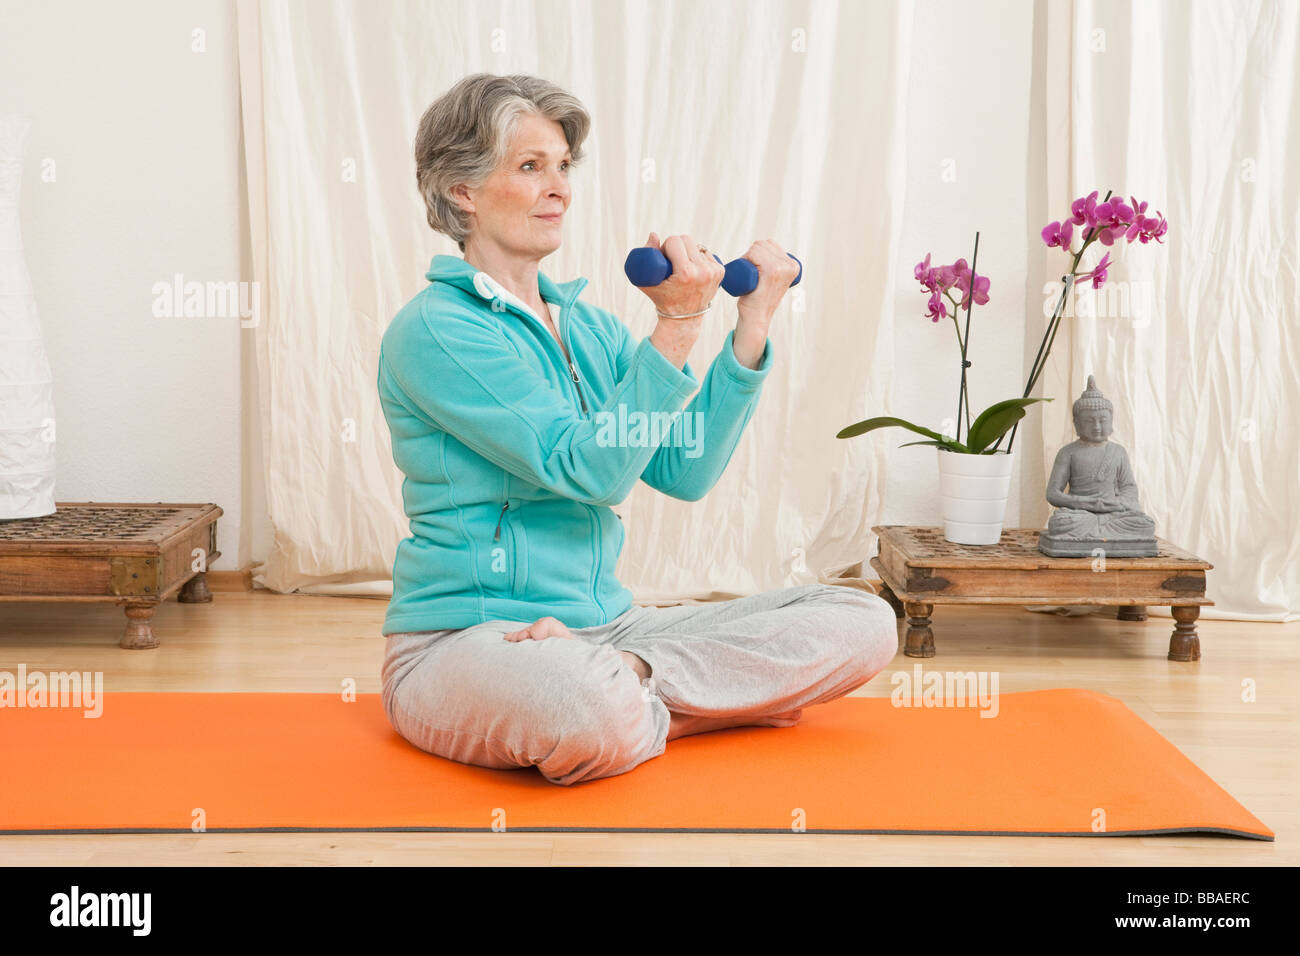 A senior woman working out with hand weights in a yoga studio - Stock Image